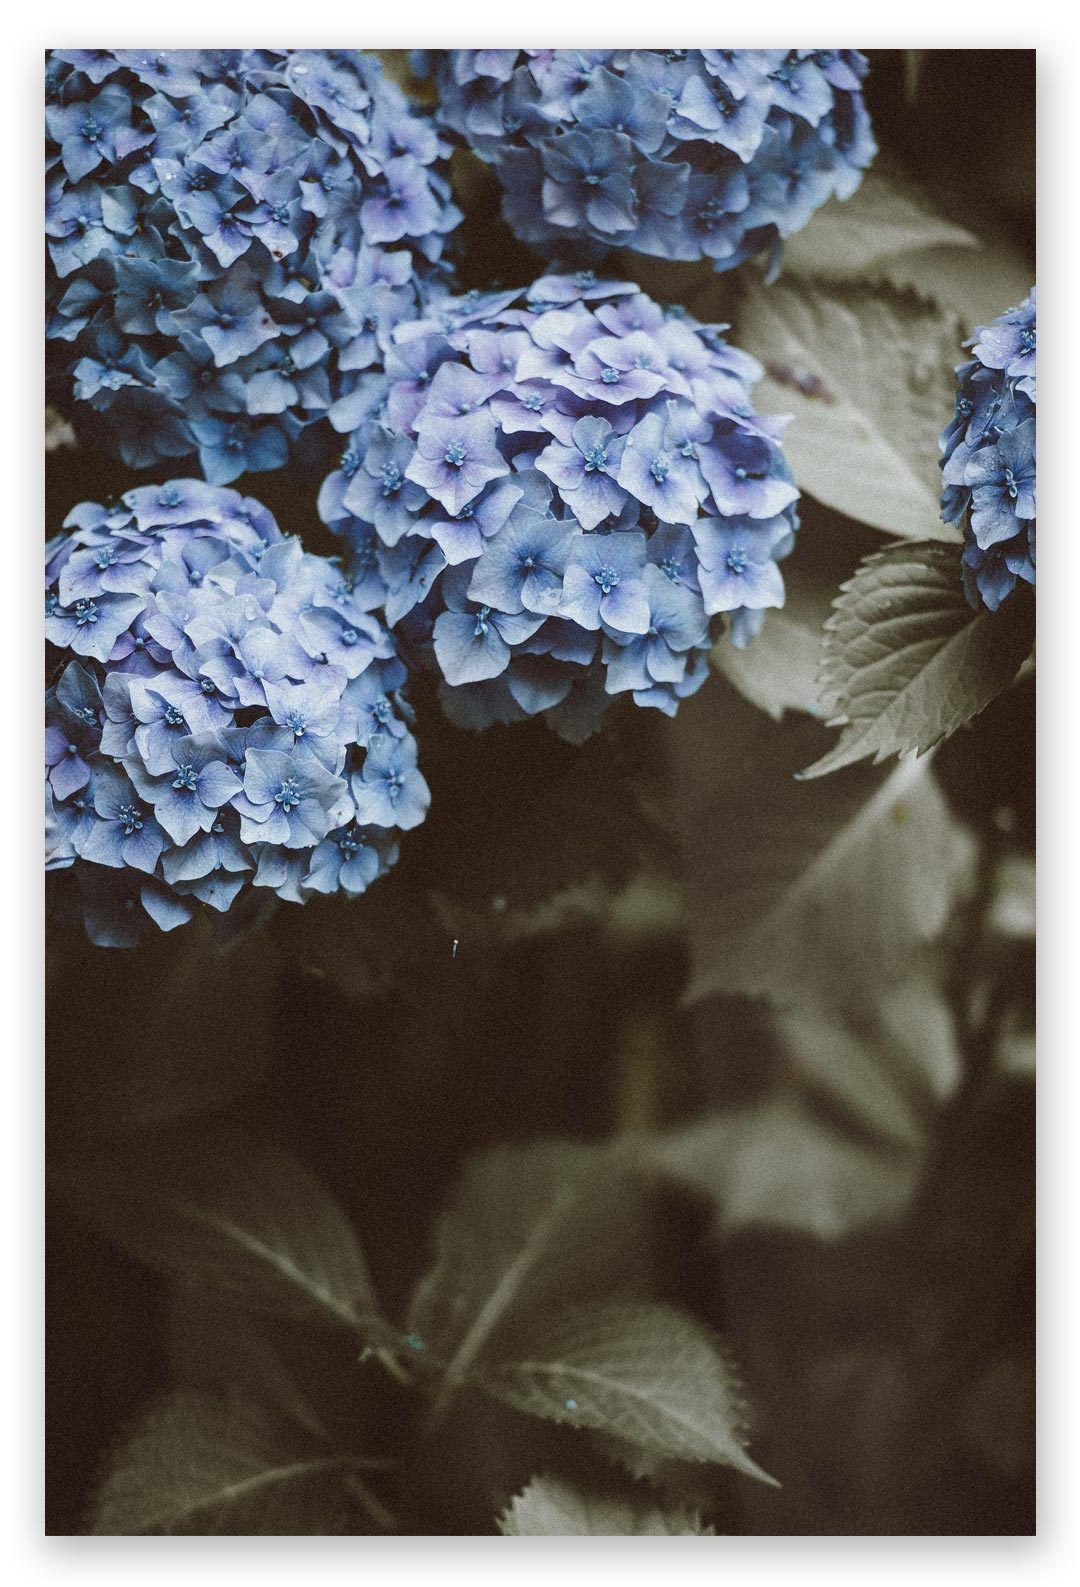 Blue hydrangea products